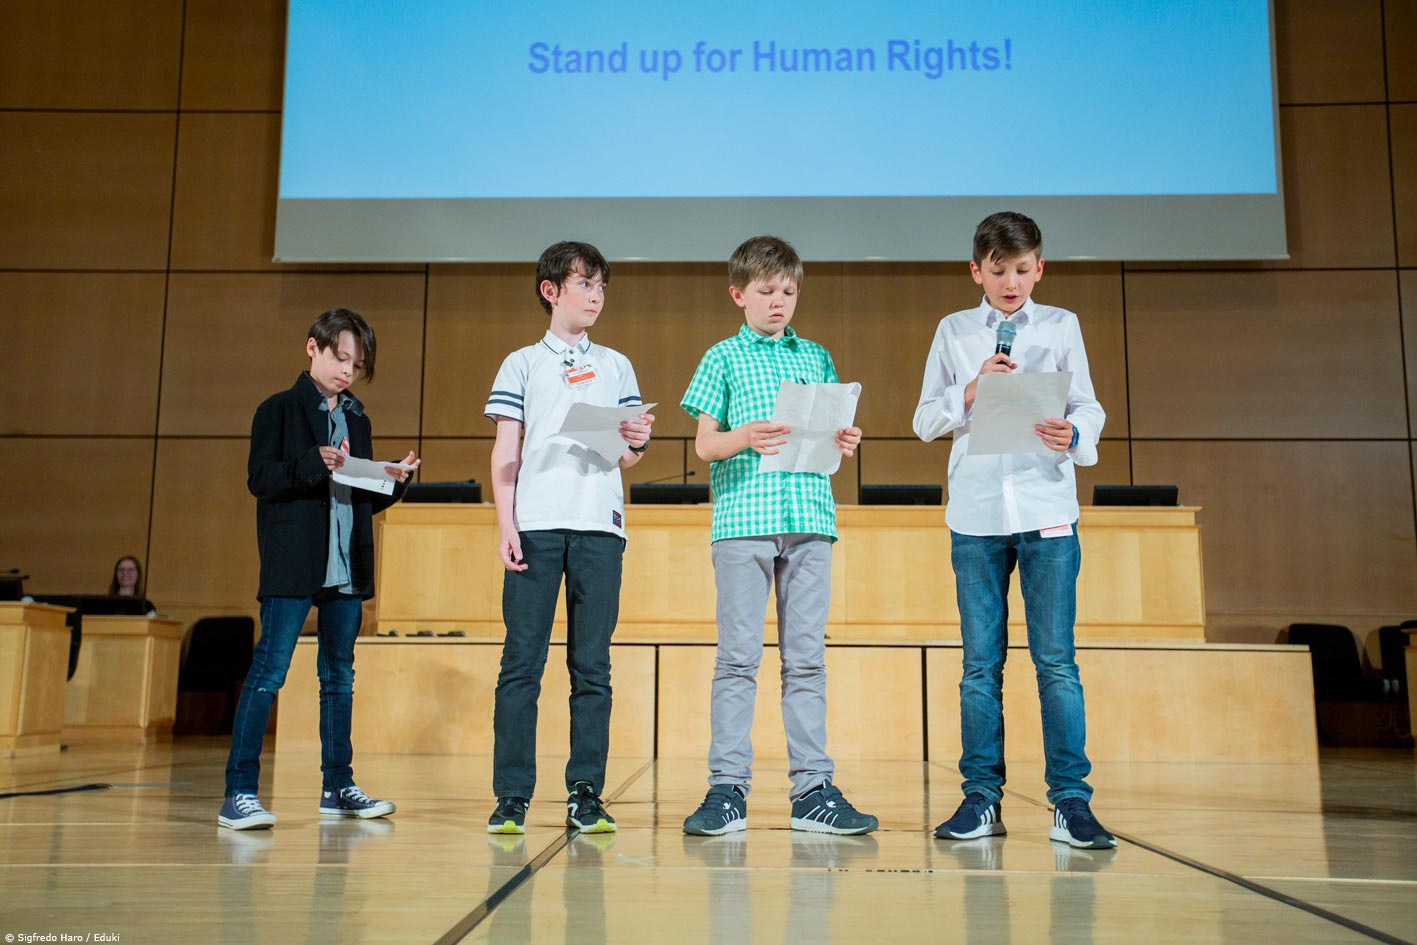 Children stand up for human rights.